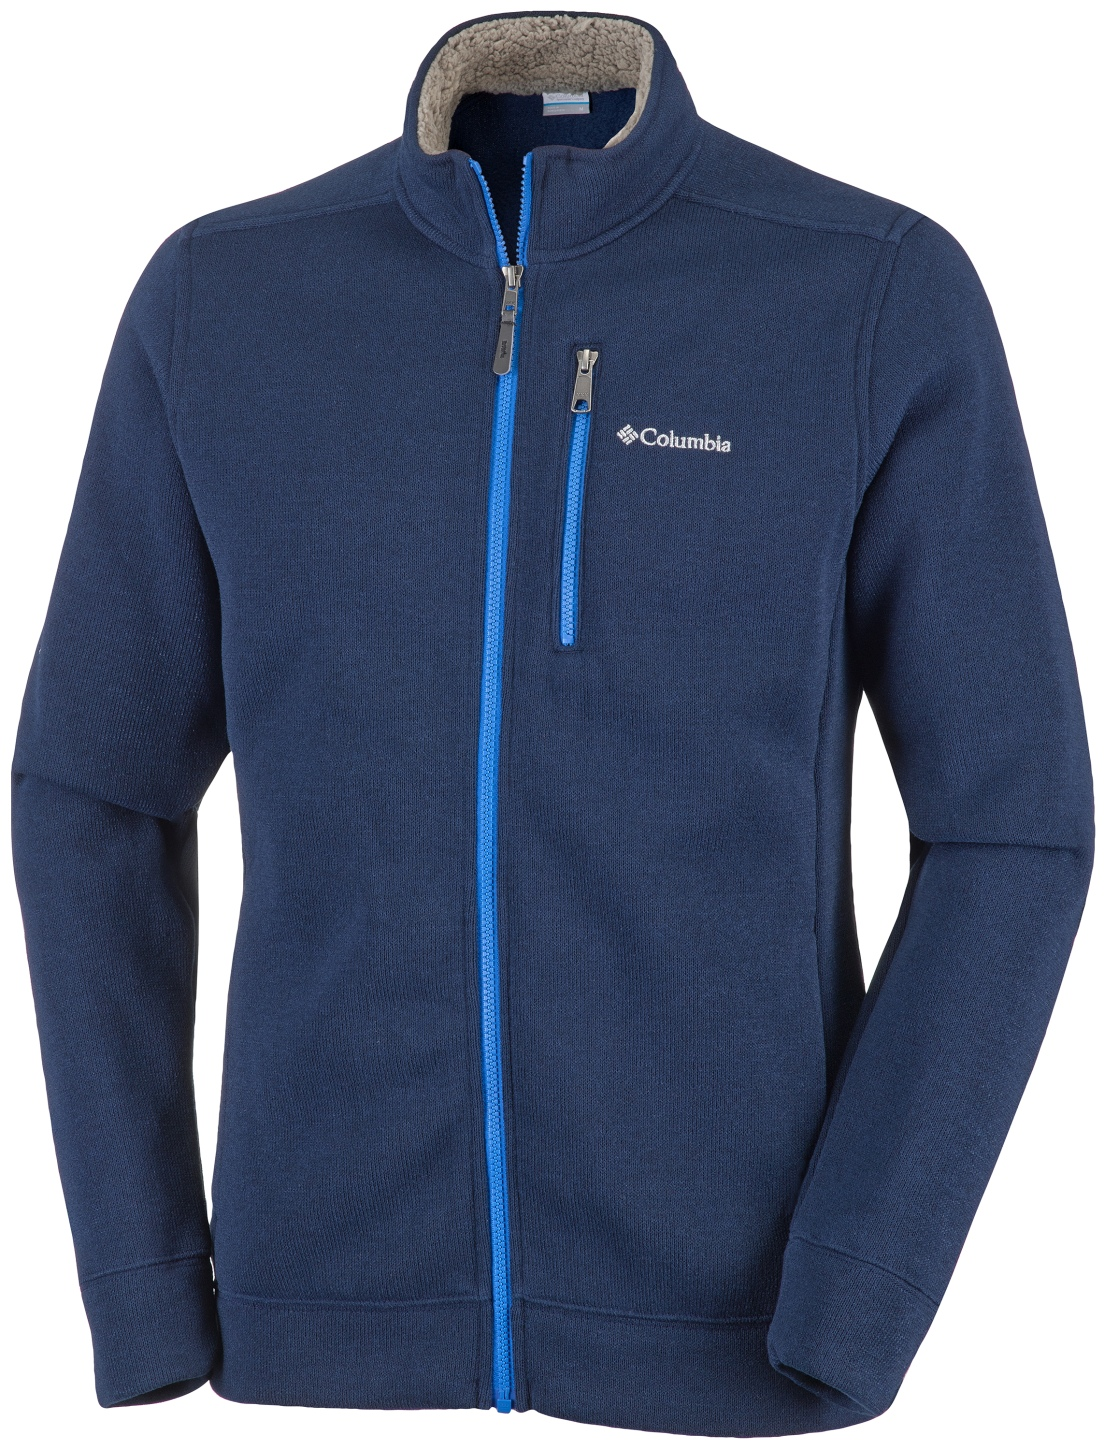 Columbia Men's Terpin Point II Full Zip Top Collegiate Navy, Super Blue-30